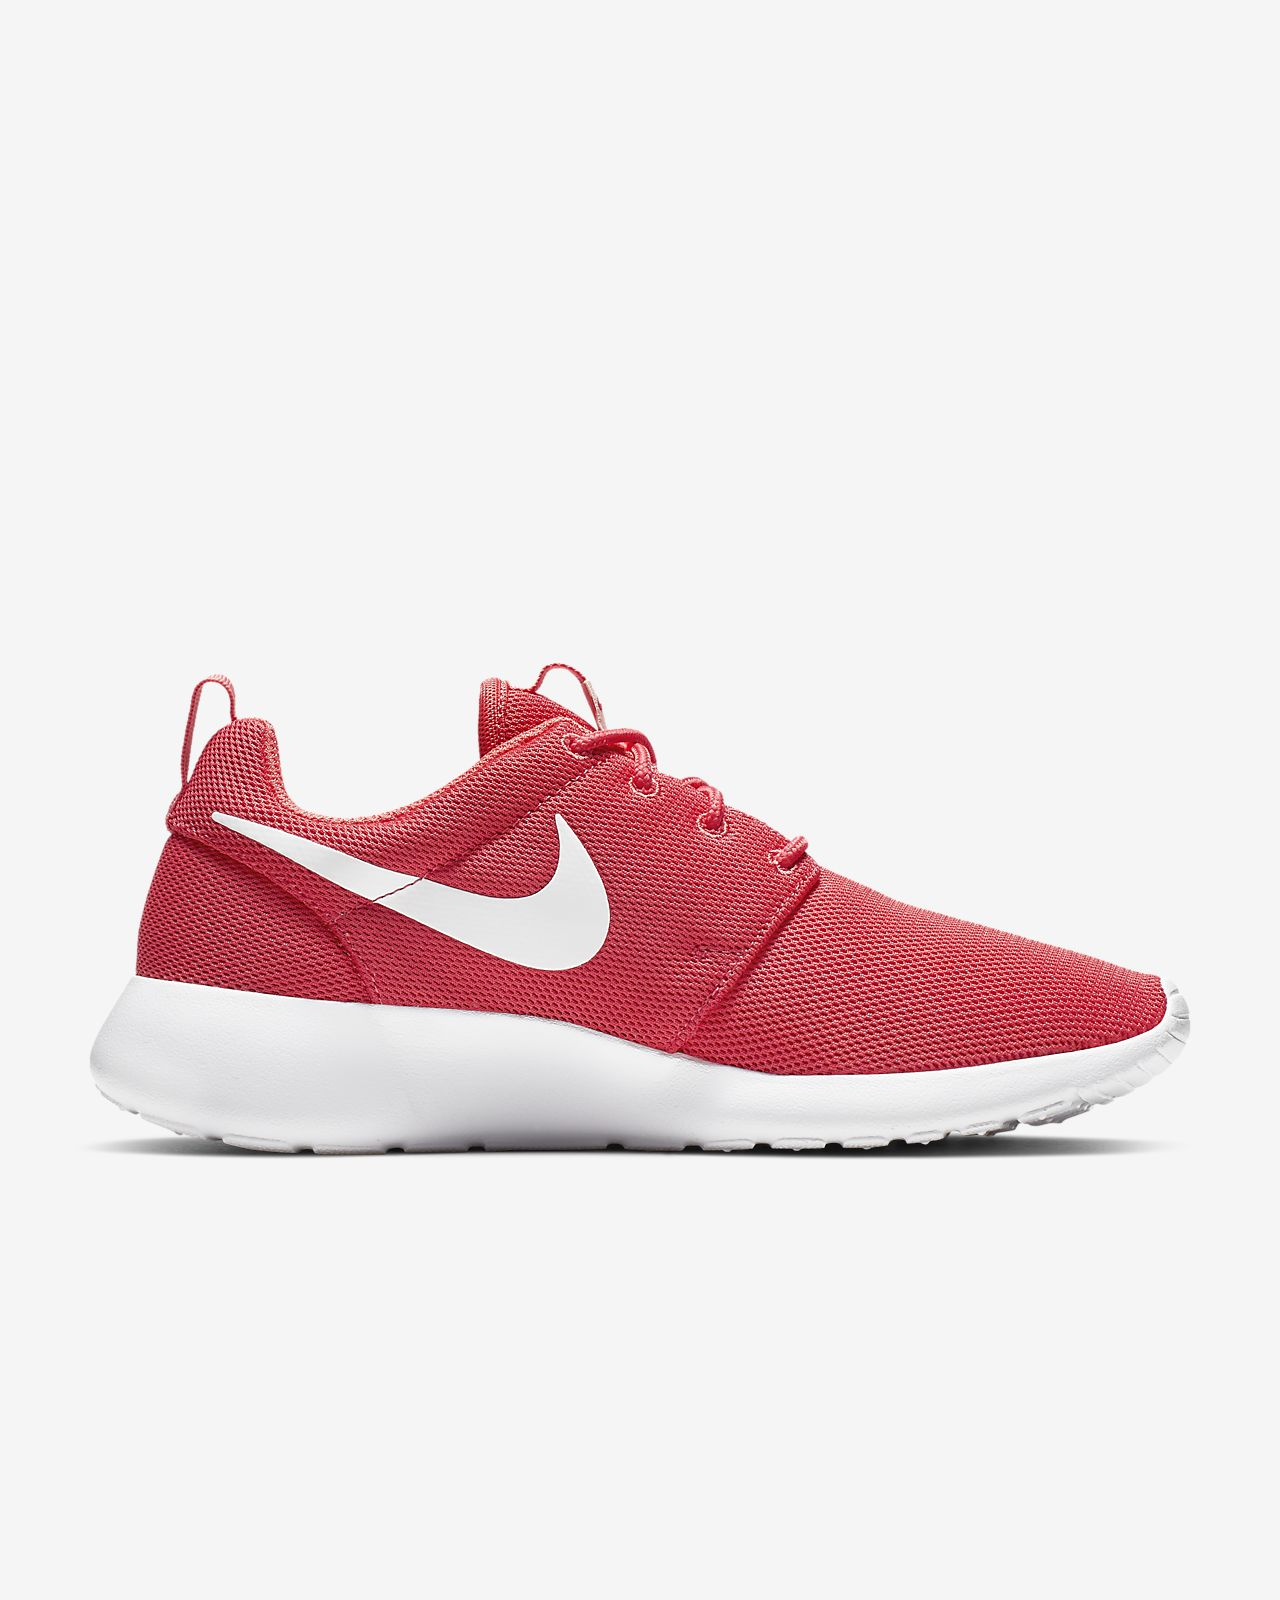 premium selection 68475 7bc8b ... Nike Roshe One Women s Shoe